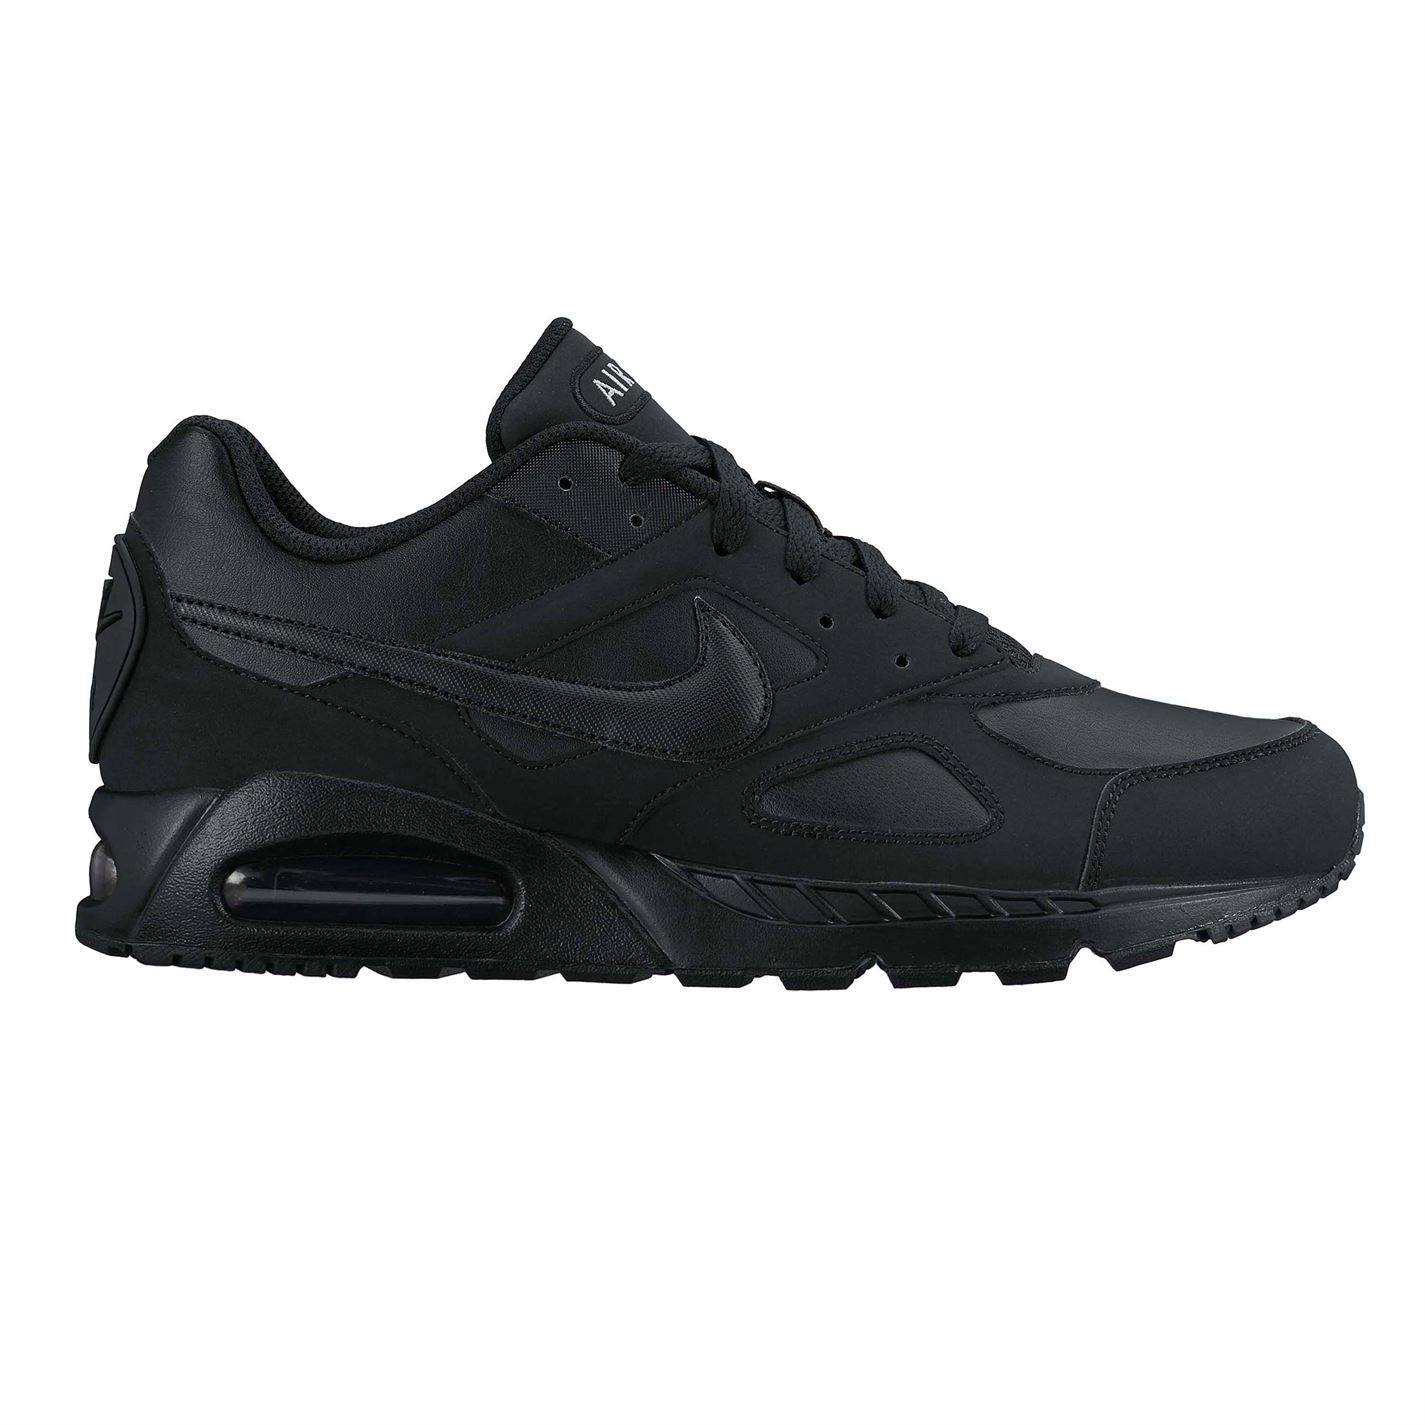 Details about Nike Air Max Ivo Training Shoes Mens Gym Fitness Workout Trainers Sneakers